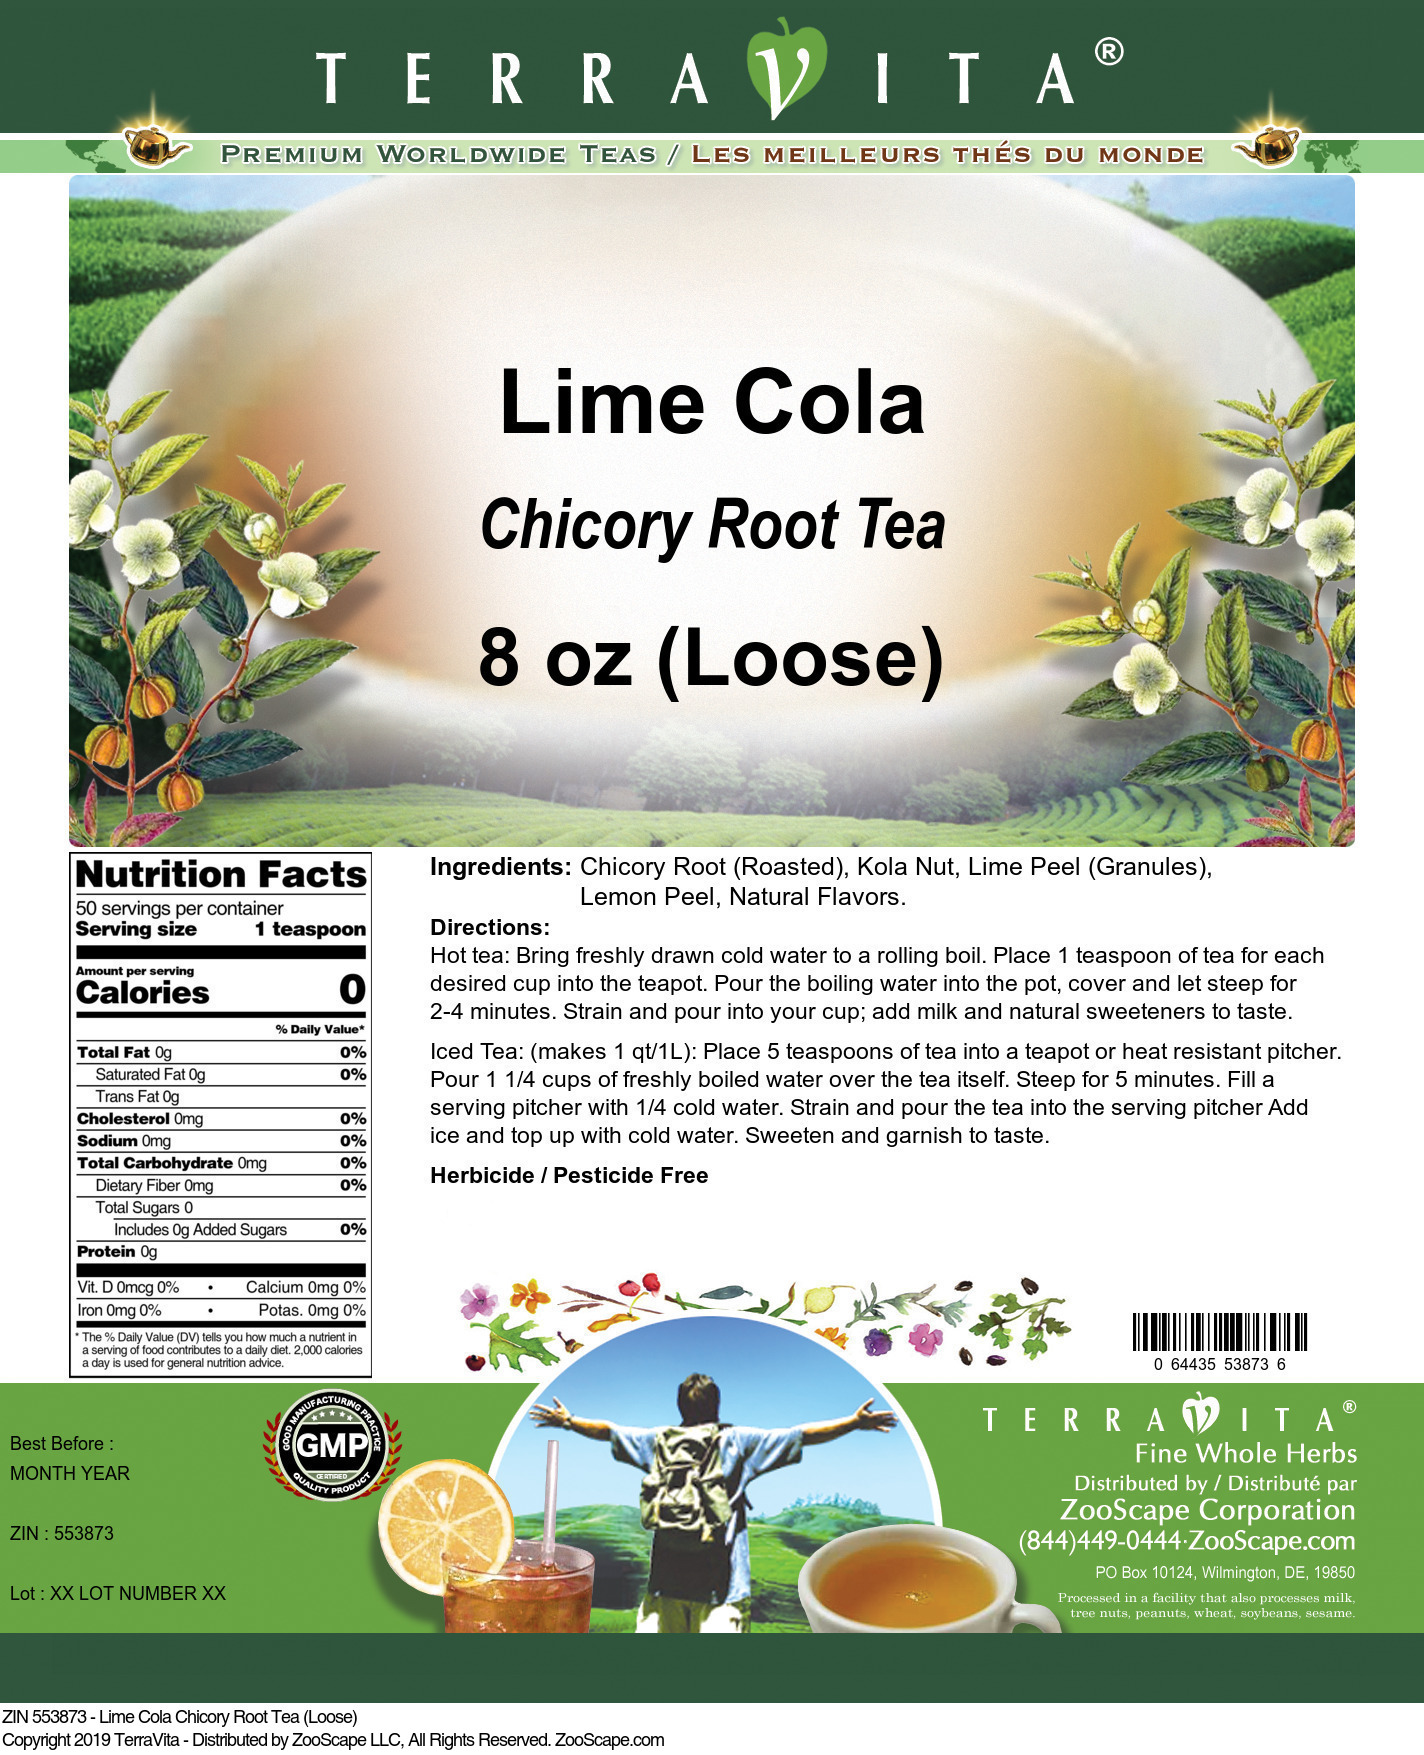 Lime Cola Chicory Root